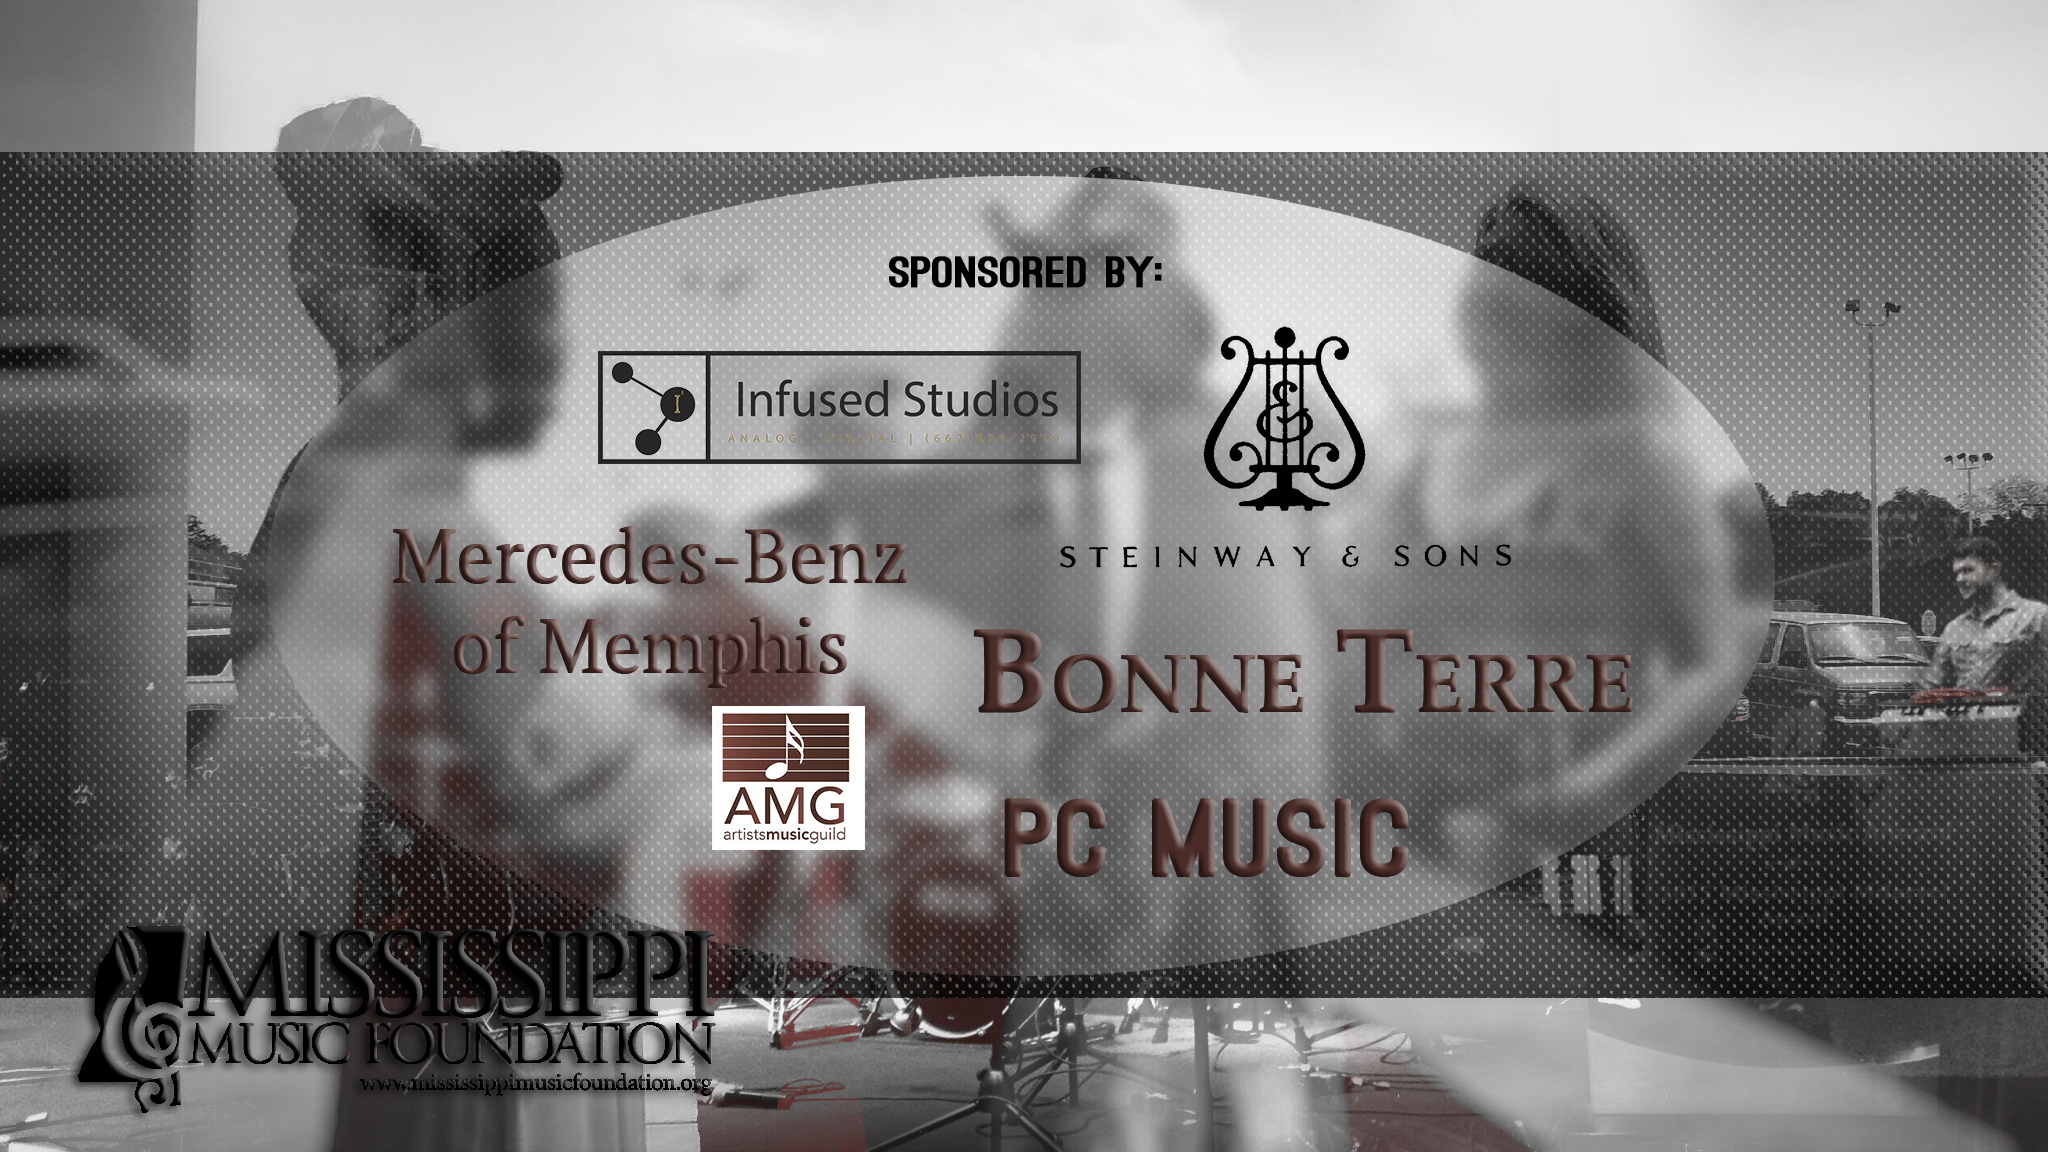 A special thanks to our Sponsors: Infused Studios, PC Music, and Bonne Terre Country Inn and Caf  e,   Mercedes-Benz of Memphis, the Artists Music Guild and Steinway and Sons.